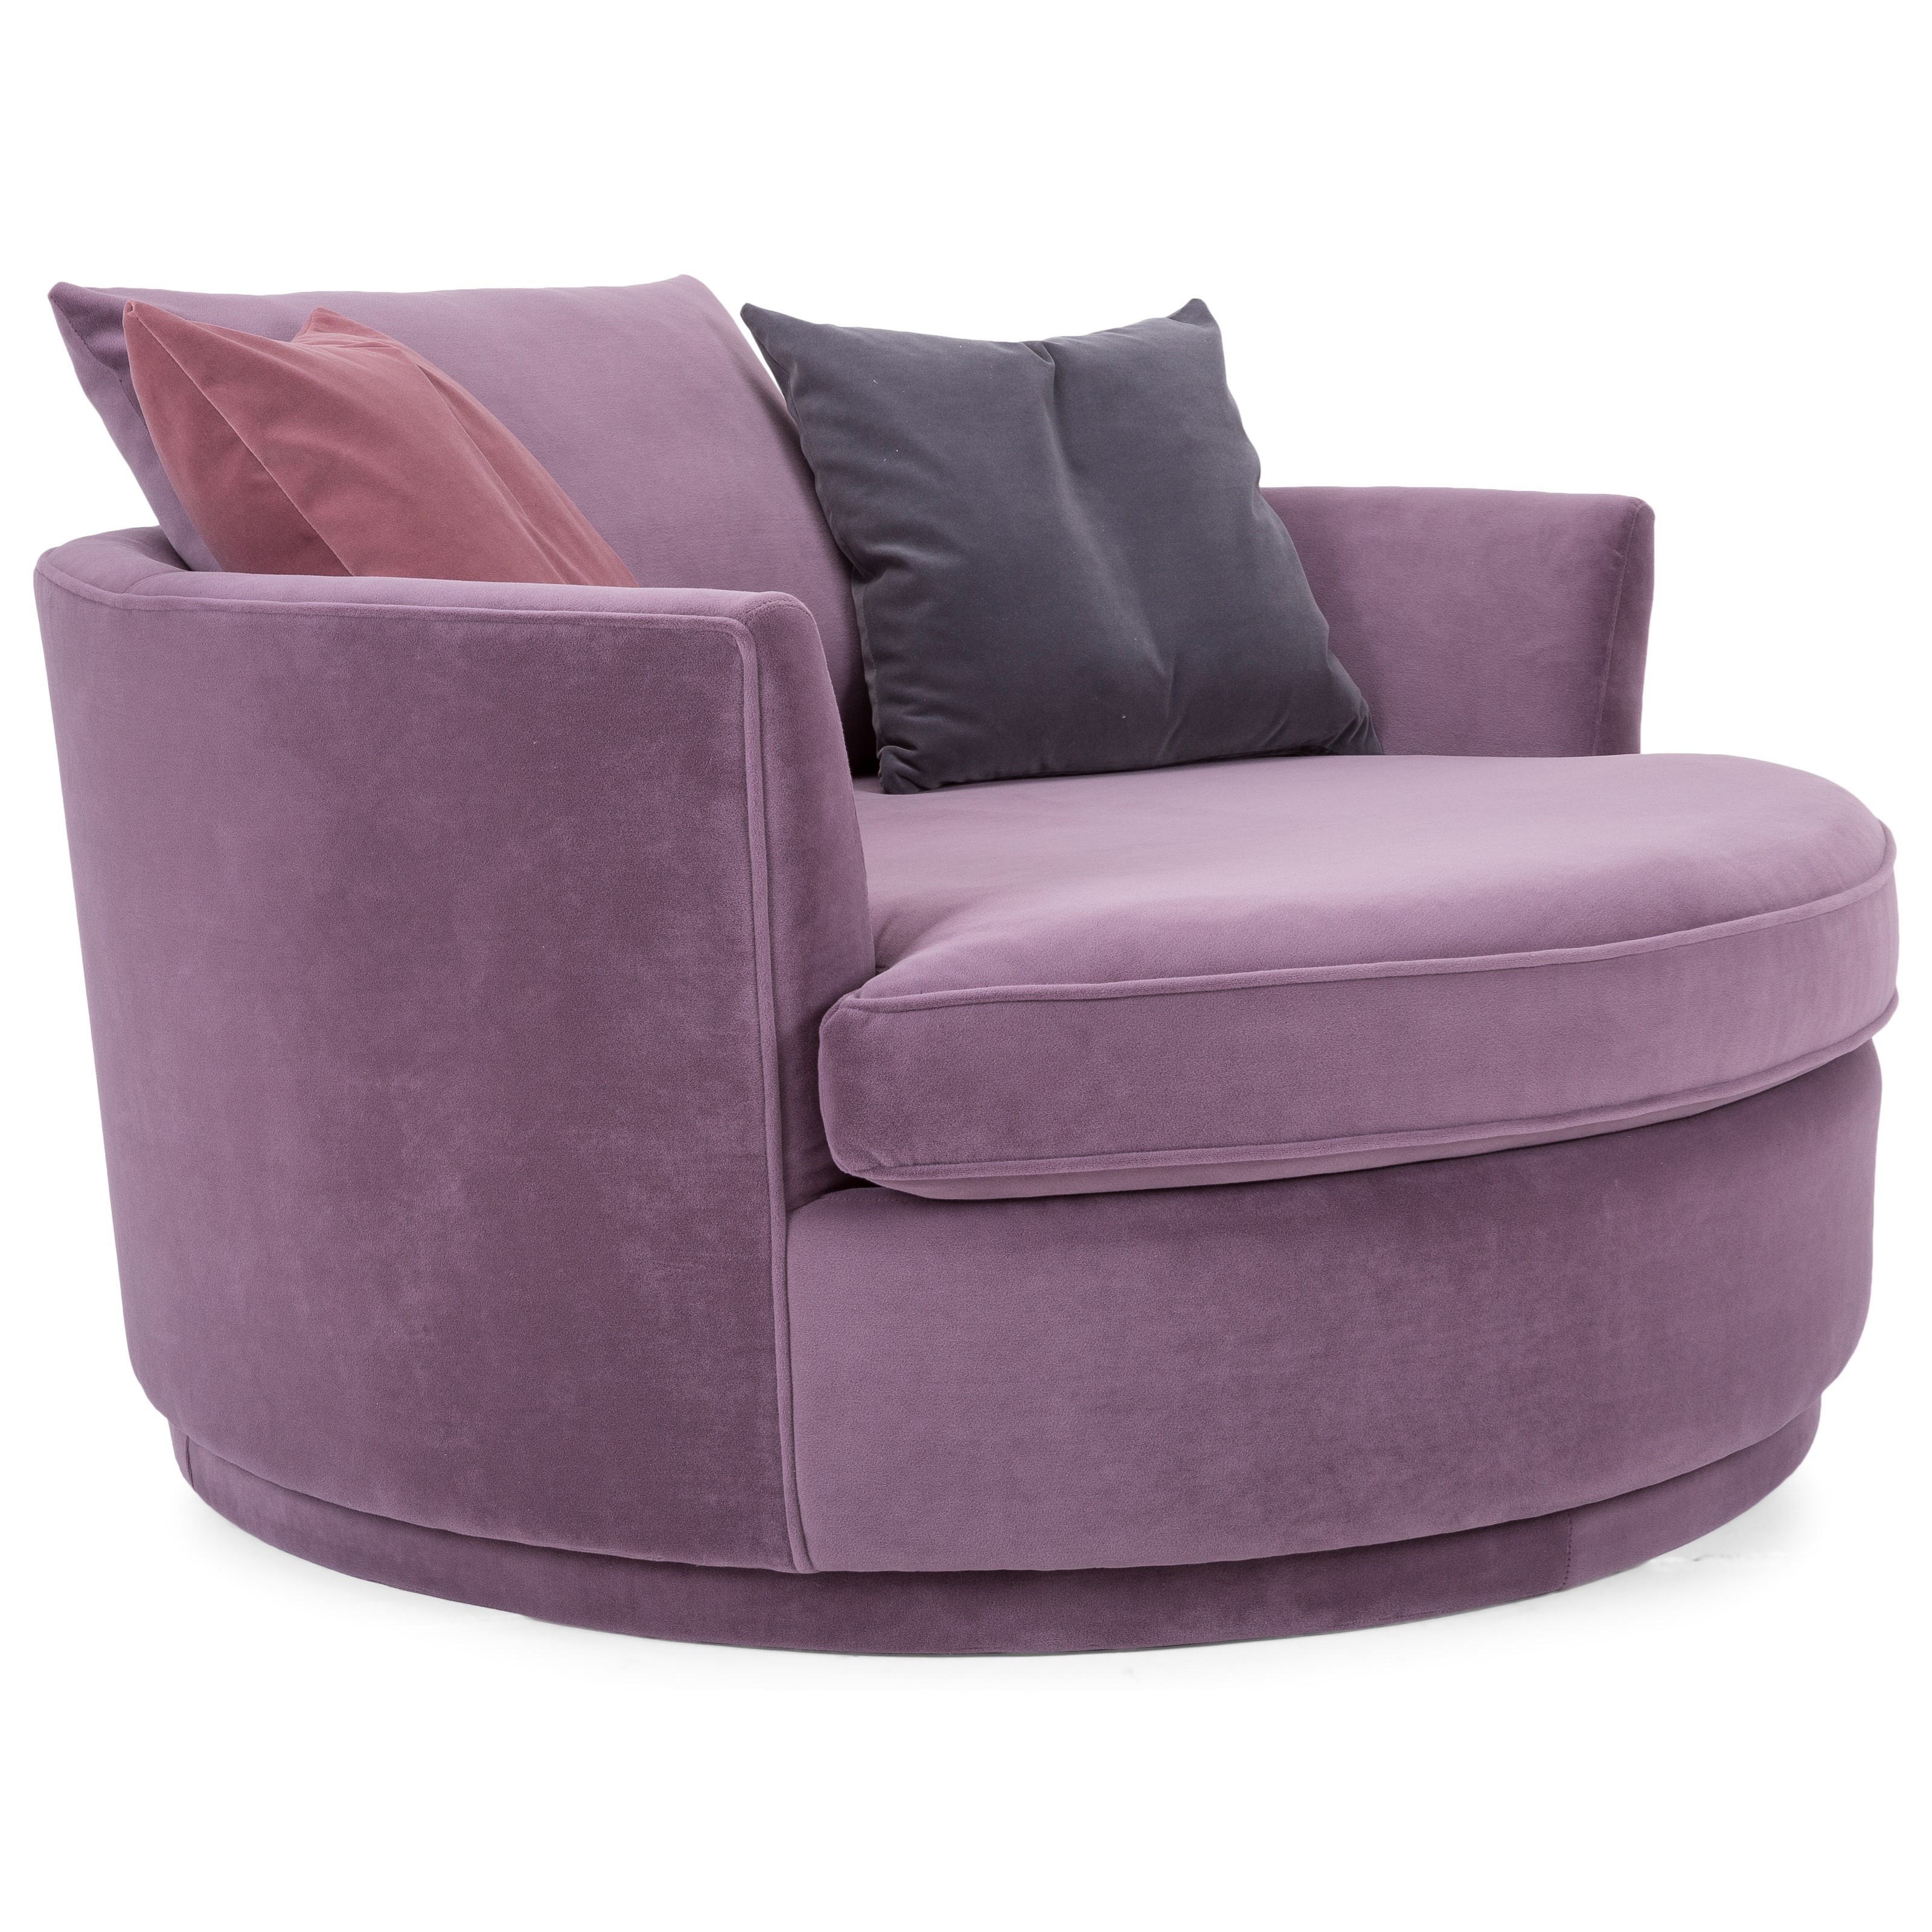 """2992 59"""" Swivel Chair by Decor-Rest at Wayside Furniture"""